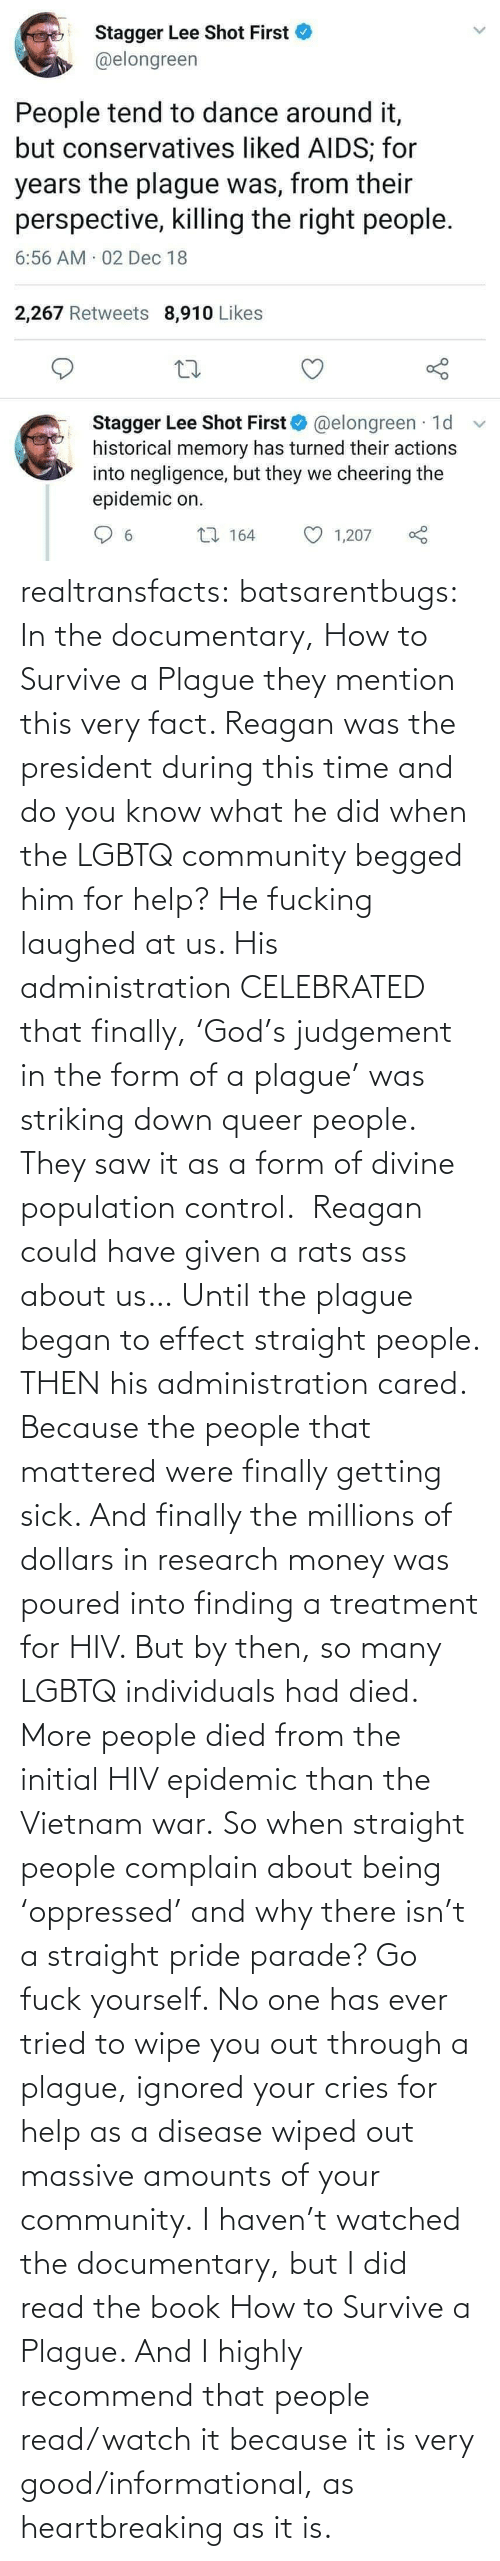 Retweets: Stagger Lee Shot First  @elongreen  People tend to dance around it,  but conservatives liked AIDS; for  years the plague was, from their  perspective, killing the right people.  6:56 AM 02 Dec 18  2,267 Retweets 8,910 Likes  Stagger Lee Shot First O @elongreen · 1d  historical memory has turned their actions  into negligence, but they we cheering the  epidemic on.  27 164  1,207  6. realtransfacts:  batsarentbugs:  In the documentary, How to Survive a Plague they mention this very fact. Reagan was the president during this time and do you know what he did when the LGBTQ community begged him for help? He fucking laughed at us. His administration CELEBRATED that finally, 'God's judgement in the form of a plague' was striking down queer people.  They saw it as a form of divine population control.  Reagan could have given a rats ass about us… Until the plague began to effect straight people. THEN his administration cared. Because the people that mattered were finally getting sick. And finally the millions of dollars in research money was poured into finding a treatment for HIV. But by then, so many LGBTQ individuals had died.  More people died from the initial HIV epidemic than the Vietnam war. So when straight people complain about being 'oppressed' and why there isn't a straight pride parade? Go fuck yourself. No one has ever tried to wipe you out through a plague, ignored your cries for help as a disease wiped out massive amounts of your community.  I haven't watched the documentary, but I did read the book  How to Survive a Plague. And I highly recommend that people read/watch it because it is very good/informational, as heartbreaking as it is.